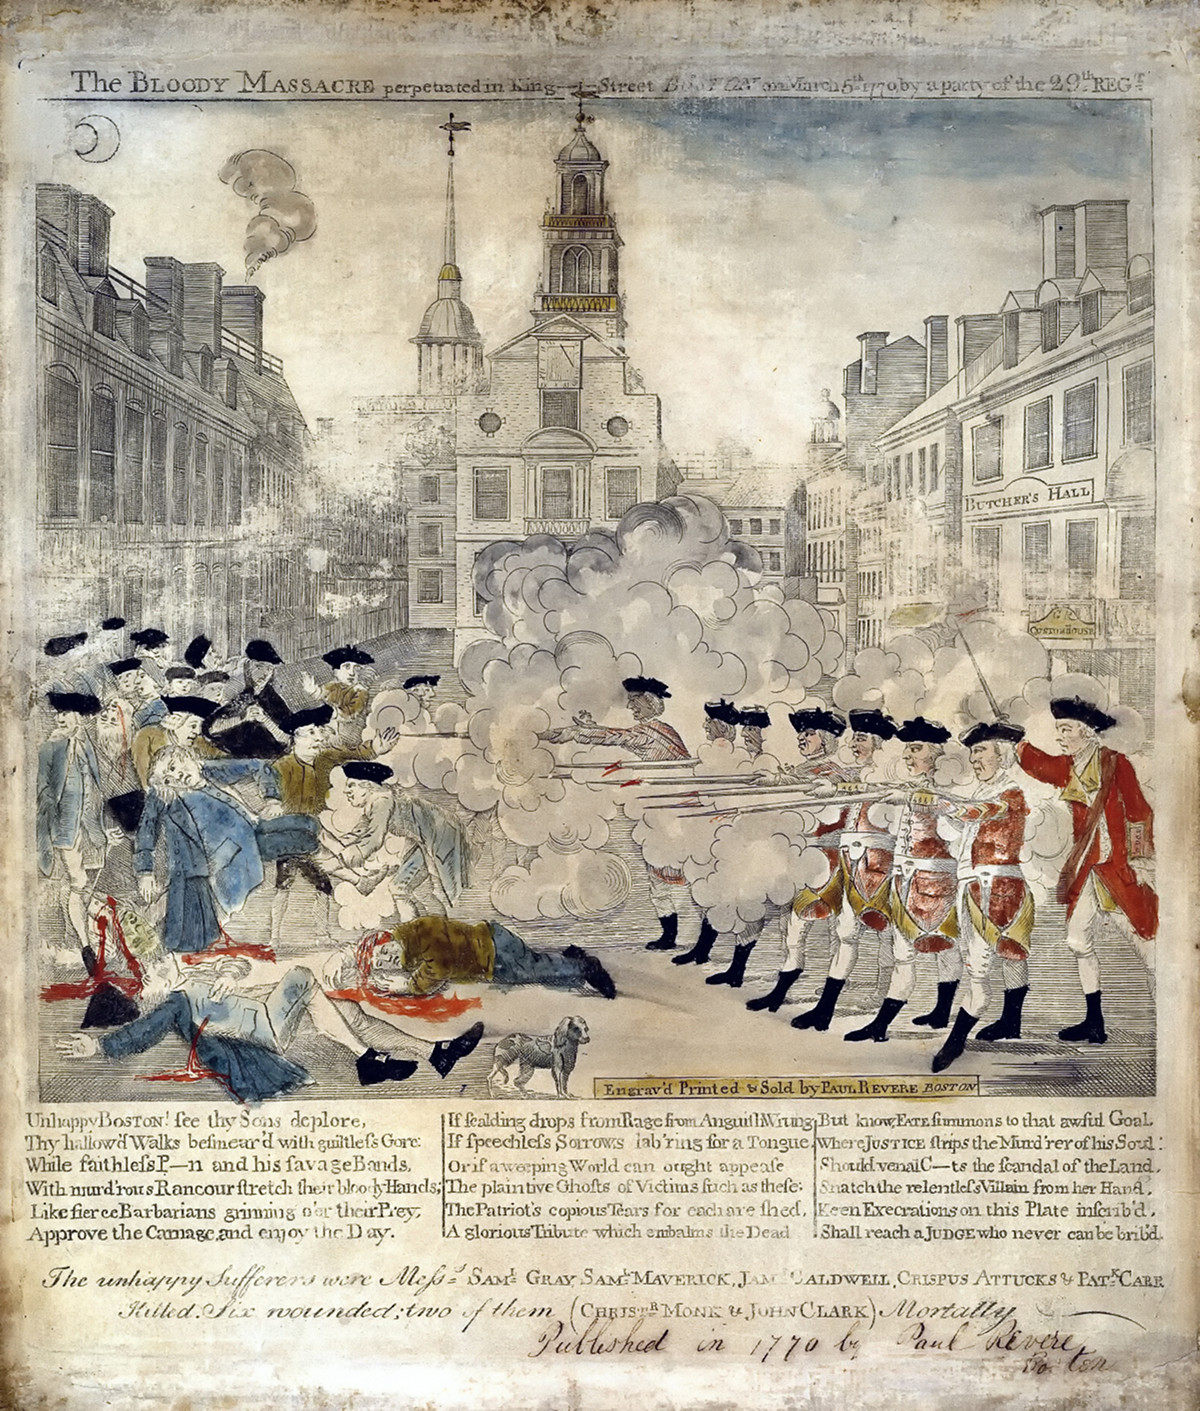 The bloody massacre perpetrated in King Street Boston on March 5th 1770 by a party of the 29th Regt.